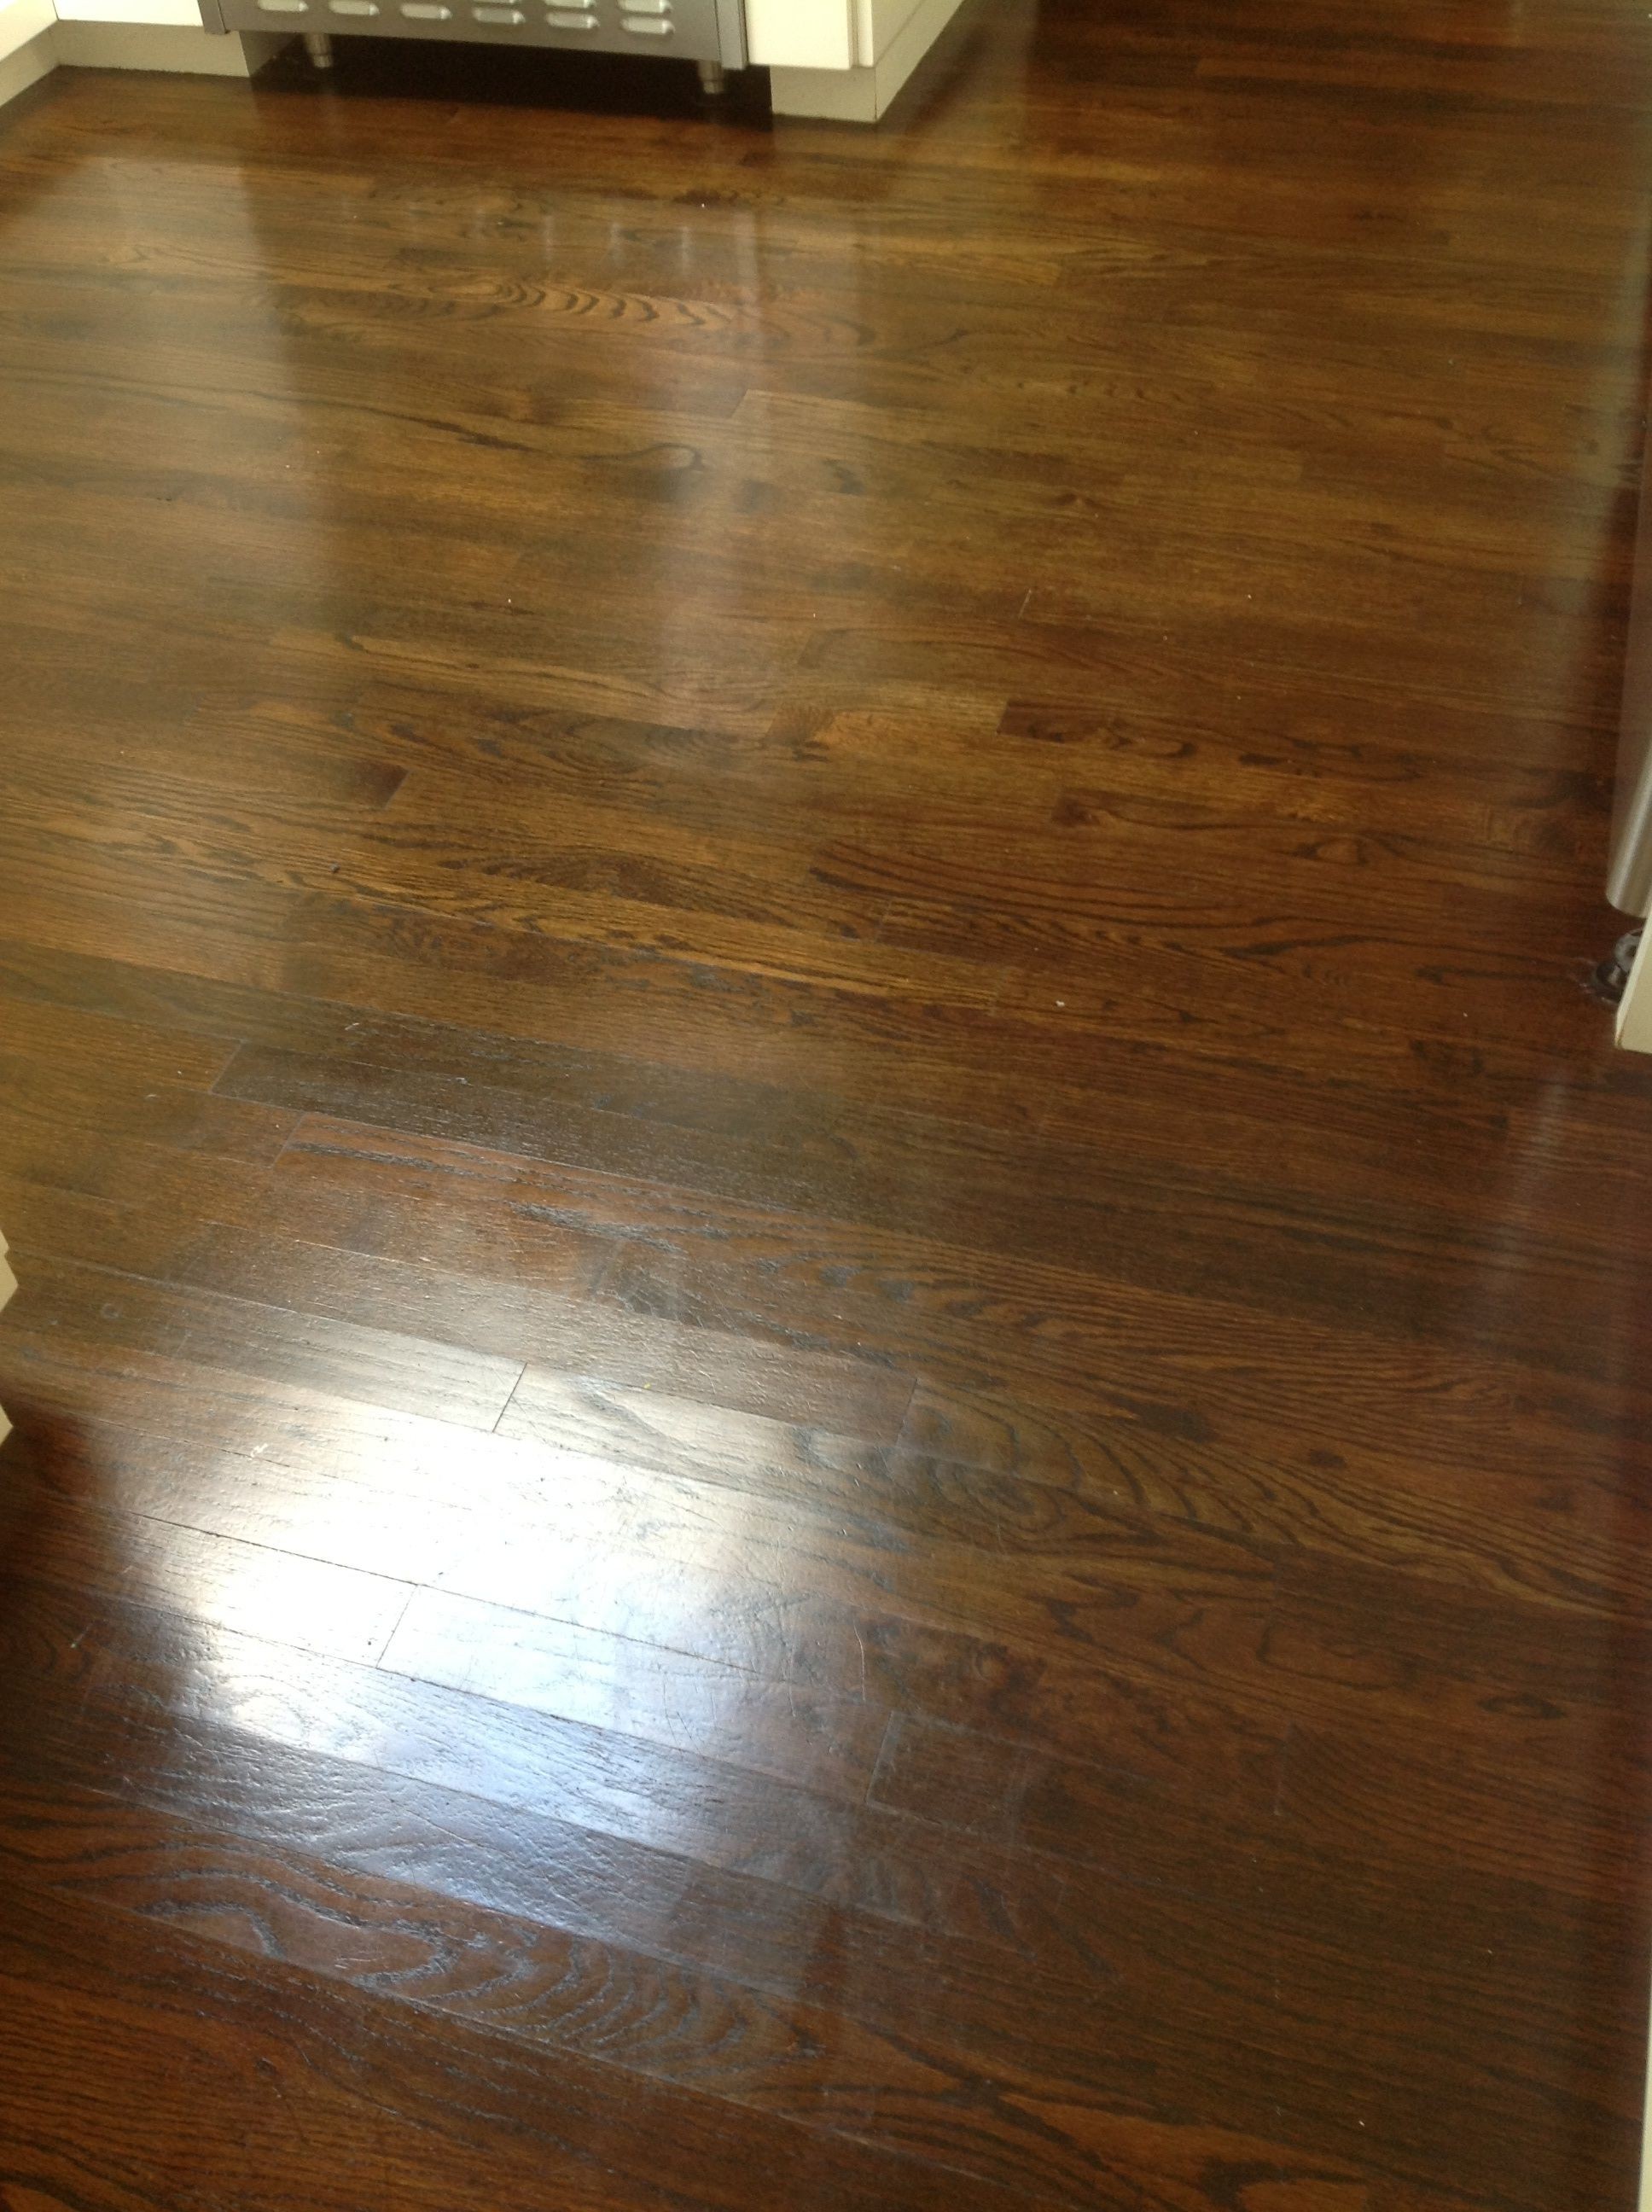 Shine Wood Floors With Coconut Oil With Images Shine Wood Floors